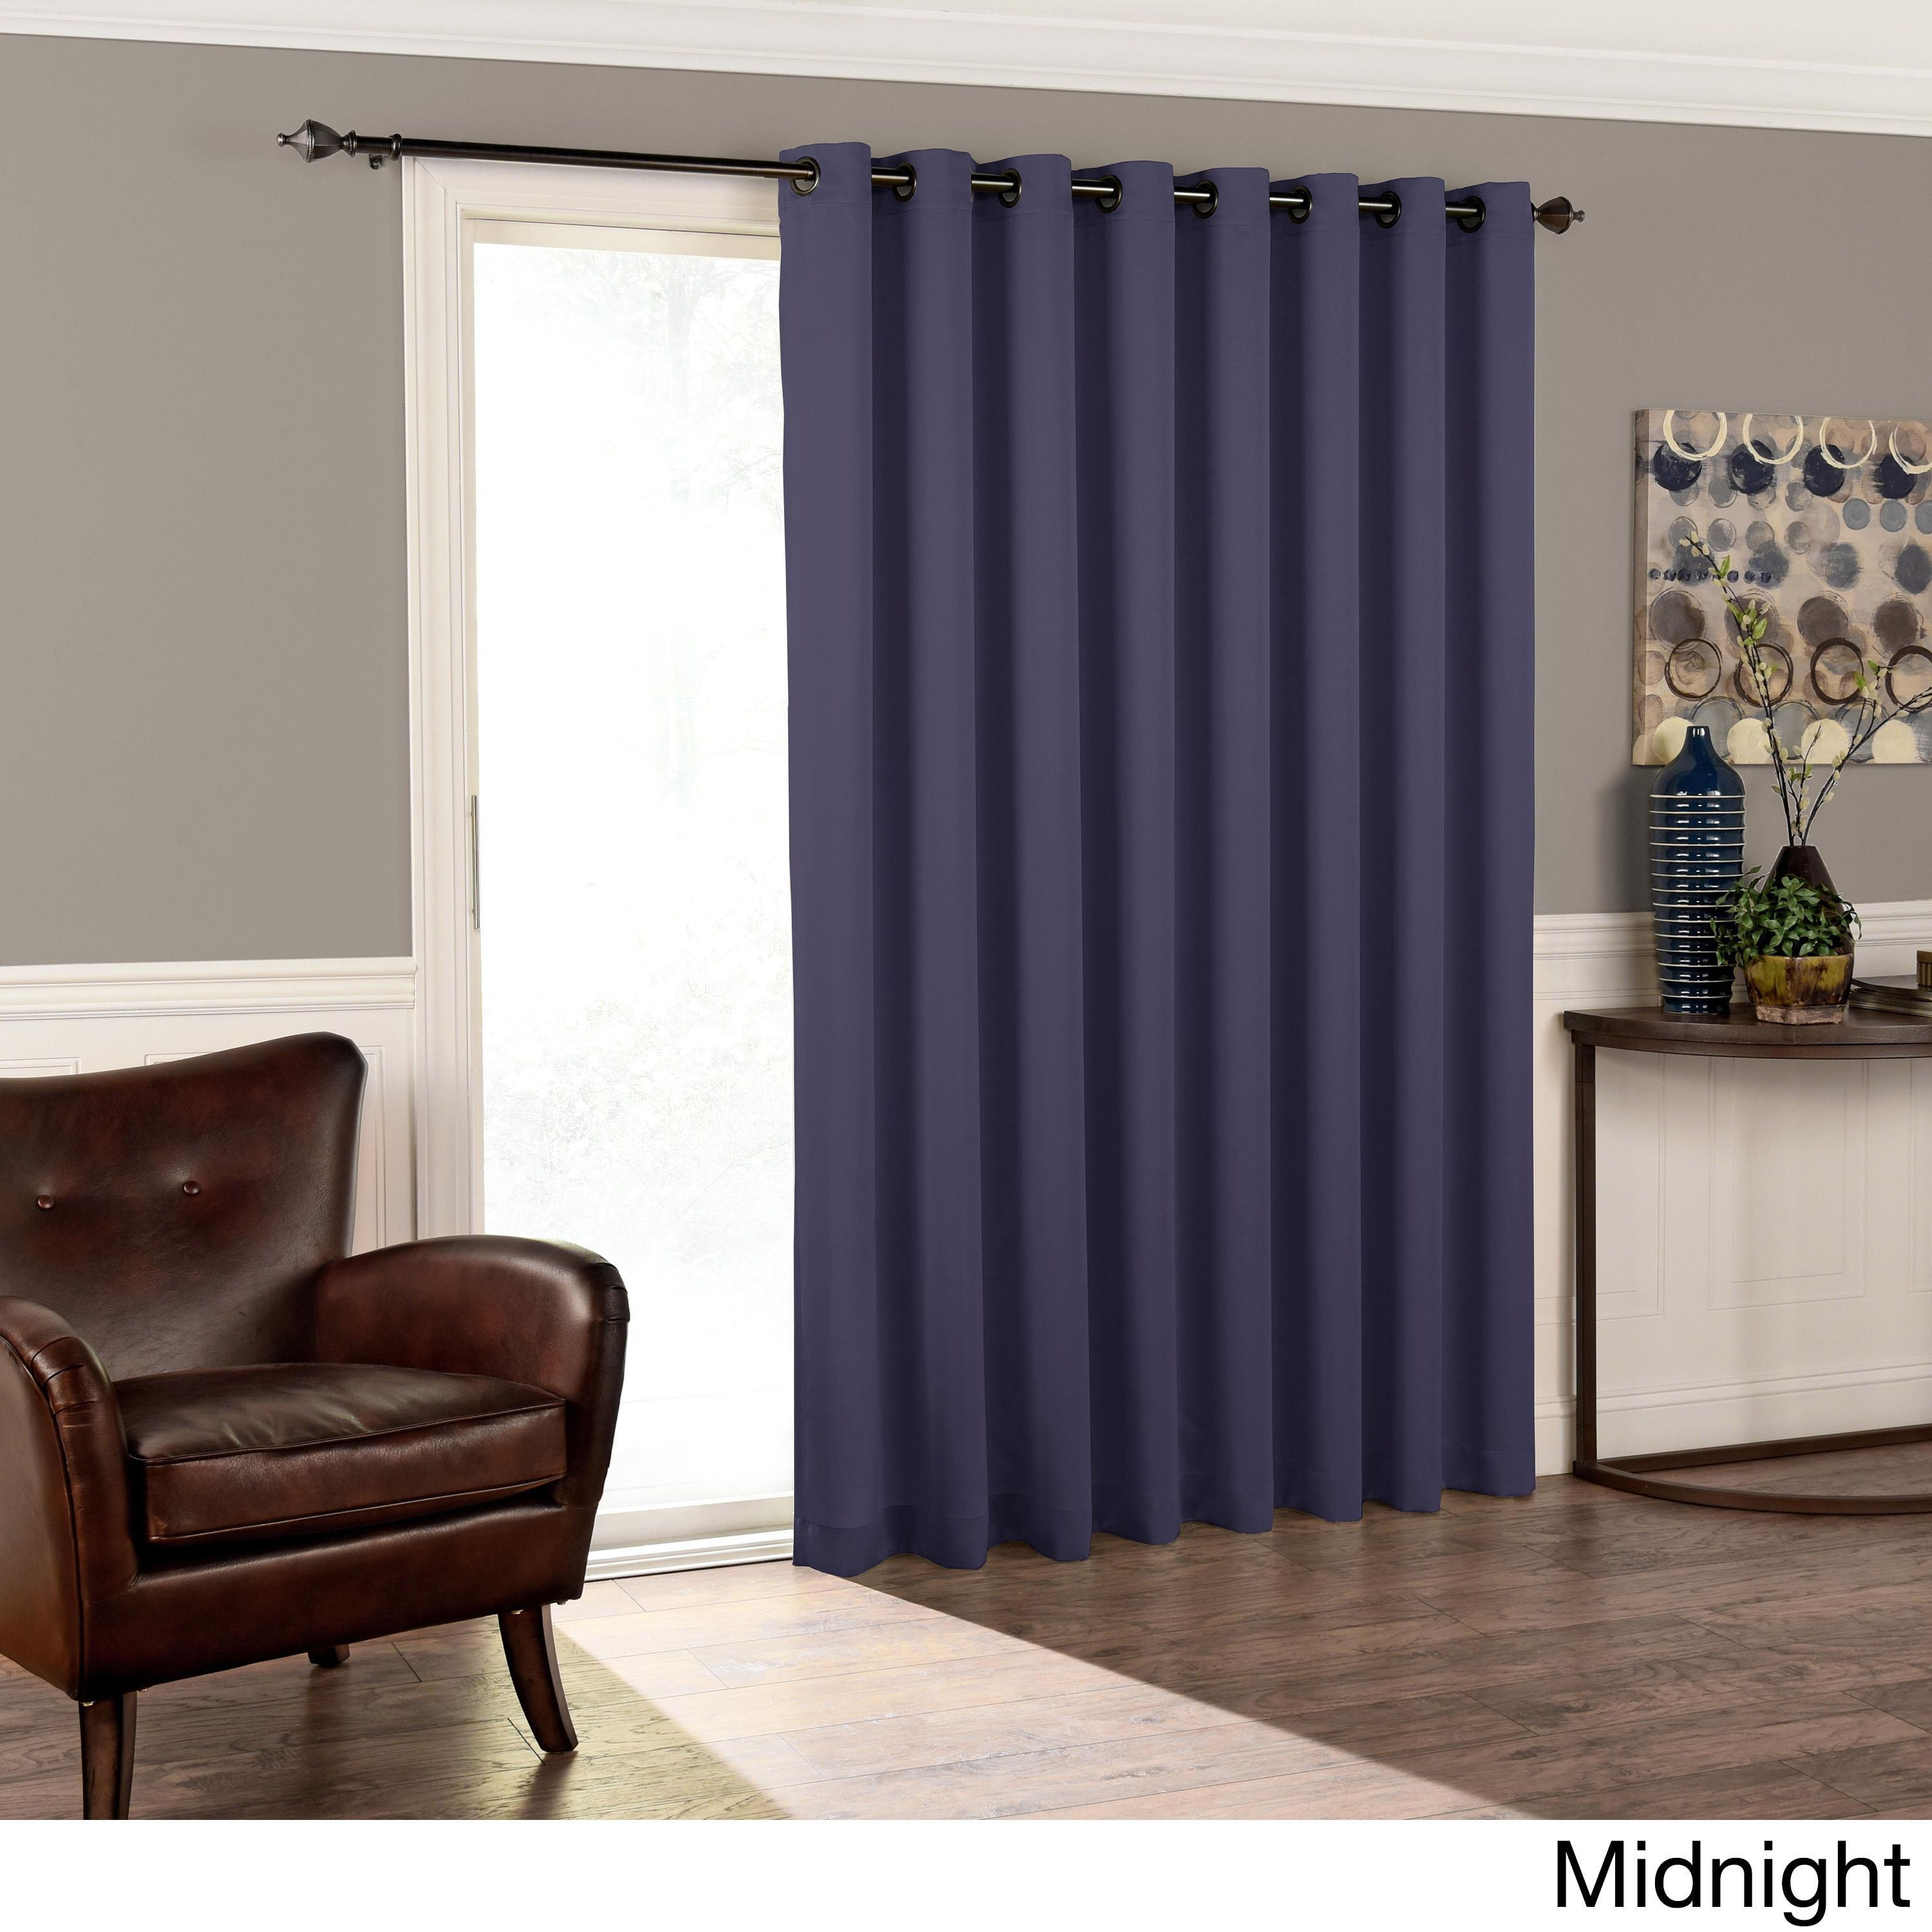 Eclipse tricia grey curtain panel products pinterest patio